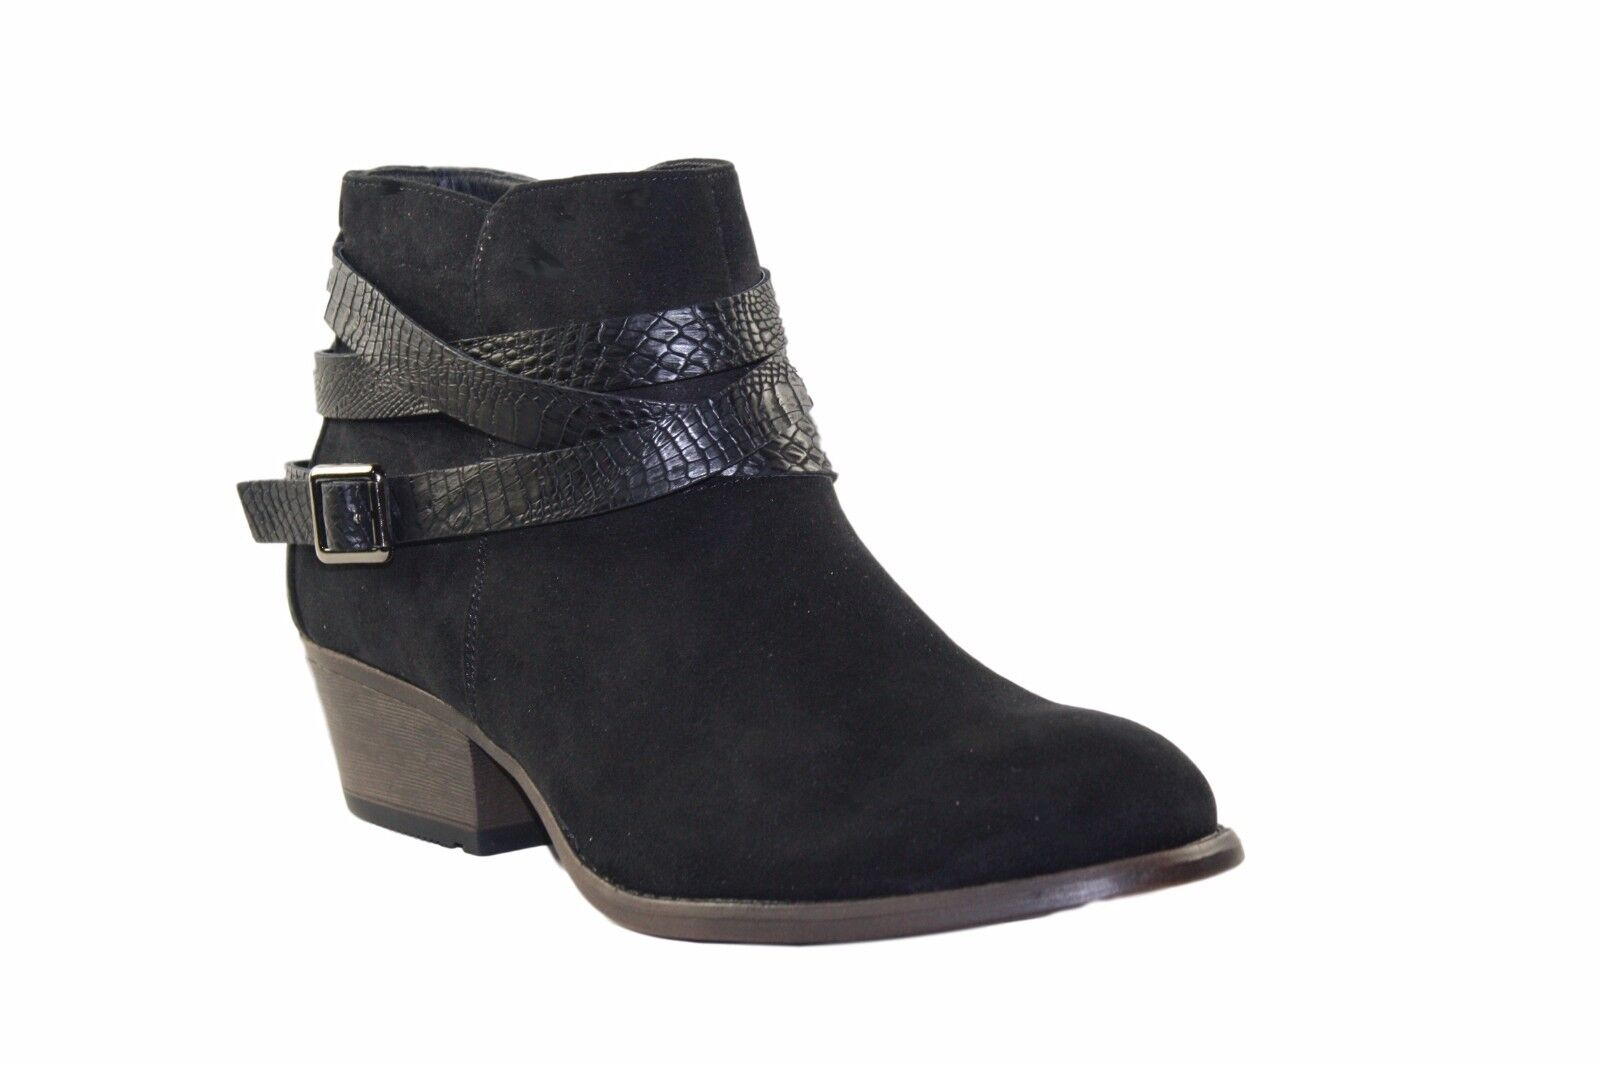 Claudia Ghizzani casual ankle boot with croc strap detail - 3 colours available